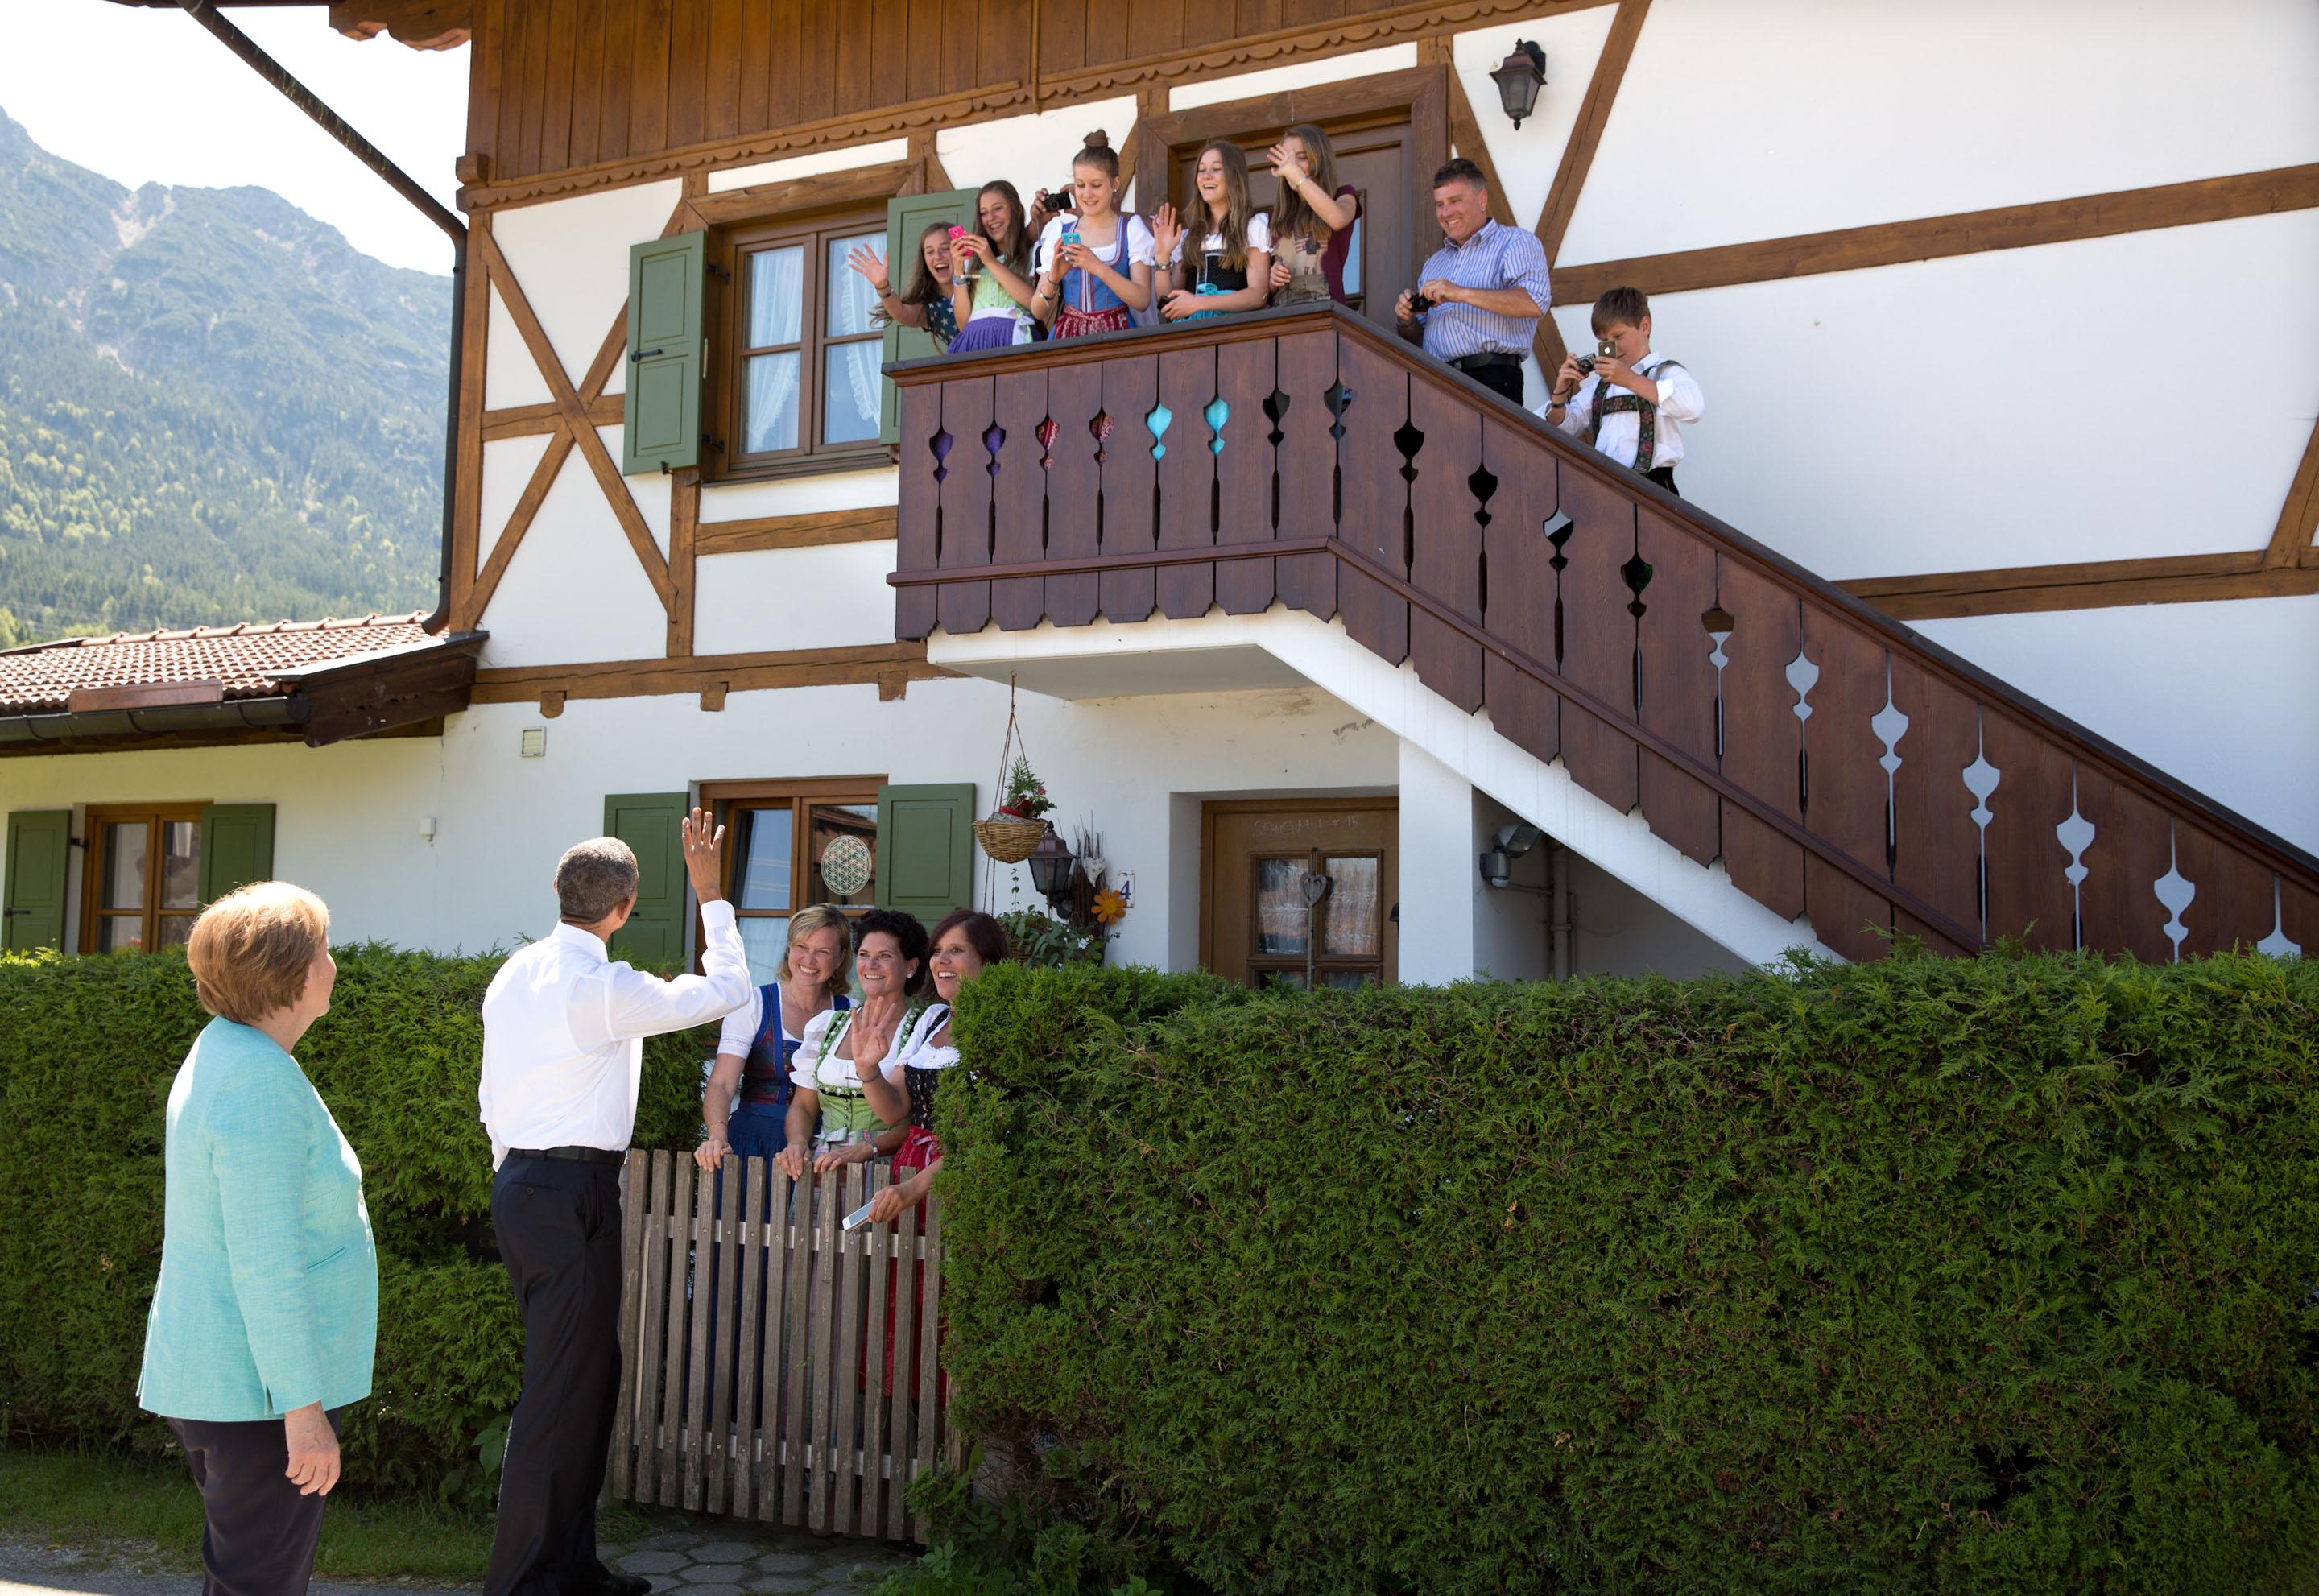 President Obama waves to locals in Germany